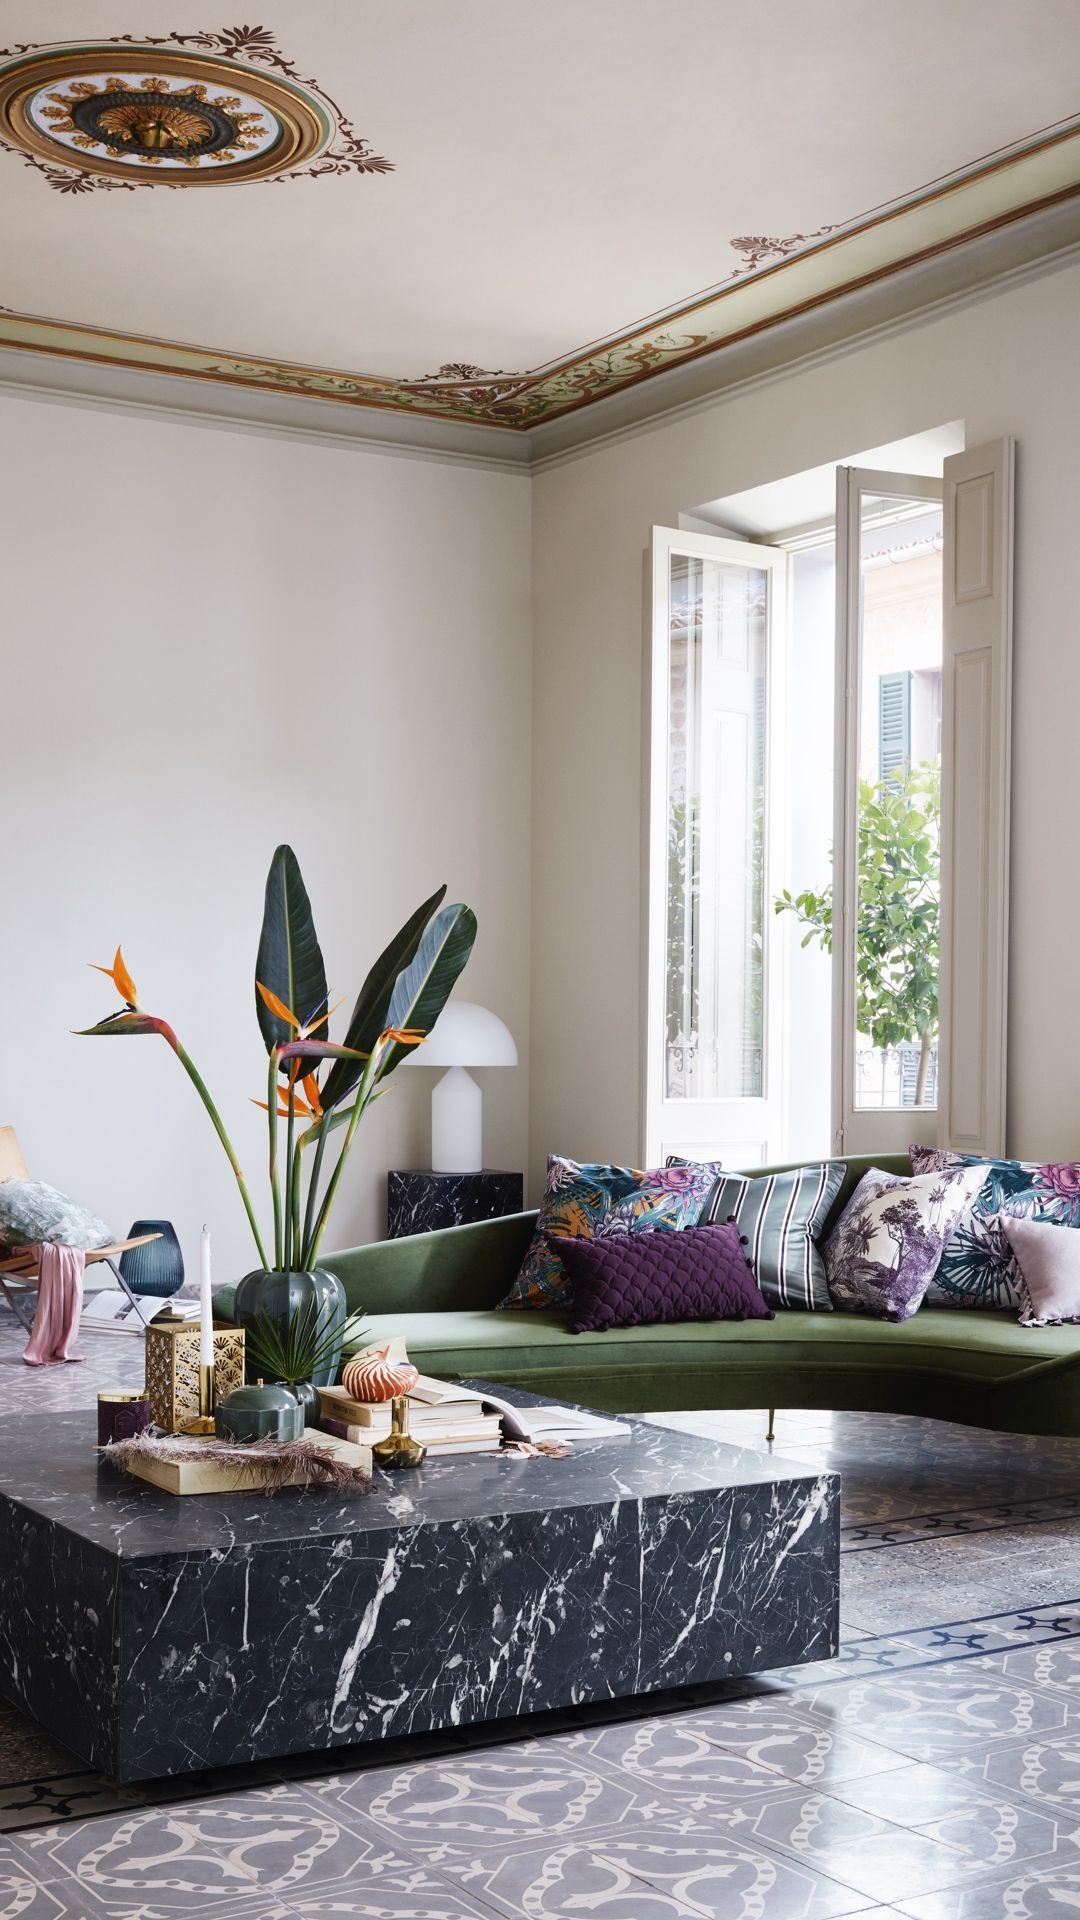 H M Home The Best Way To Liven Up Your Living Room With Bright